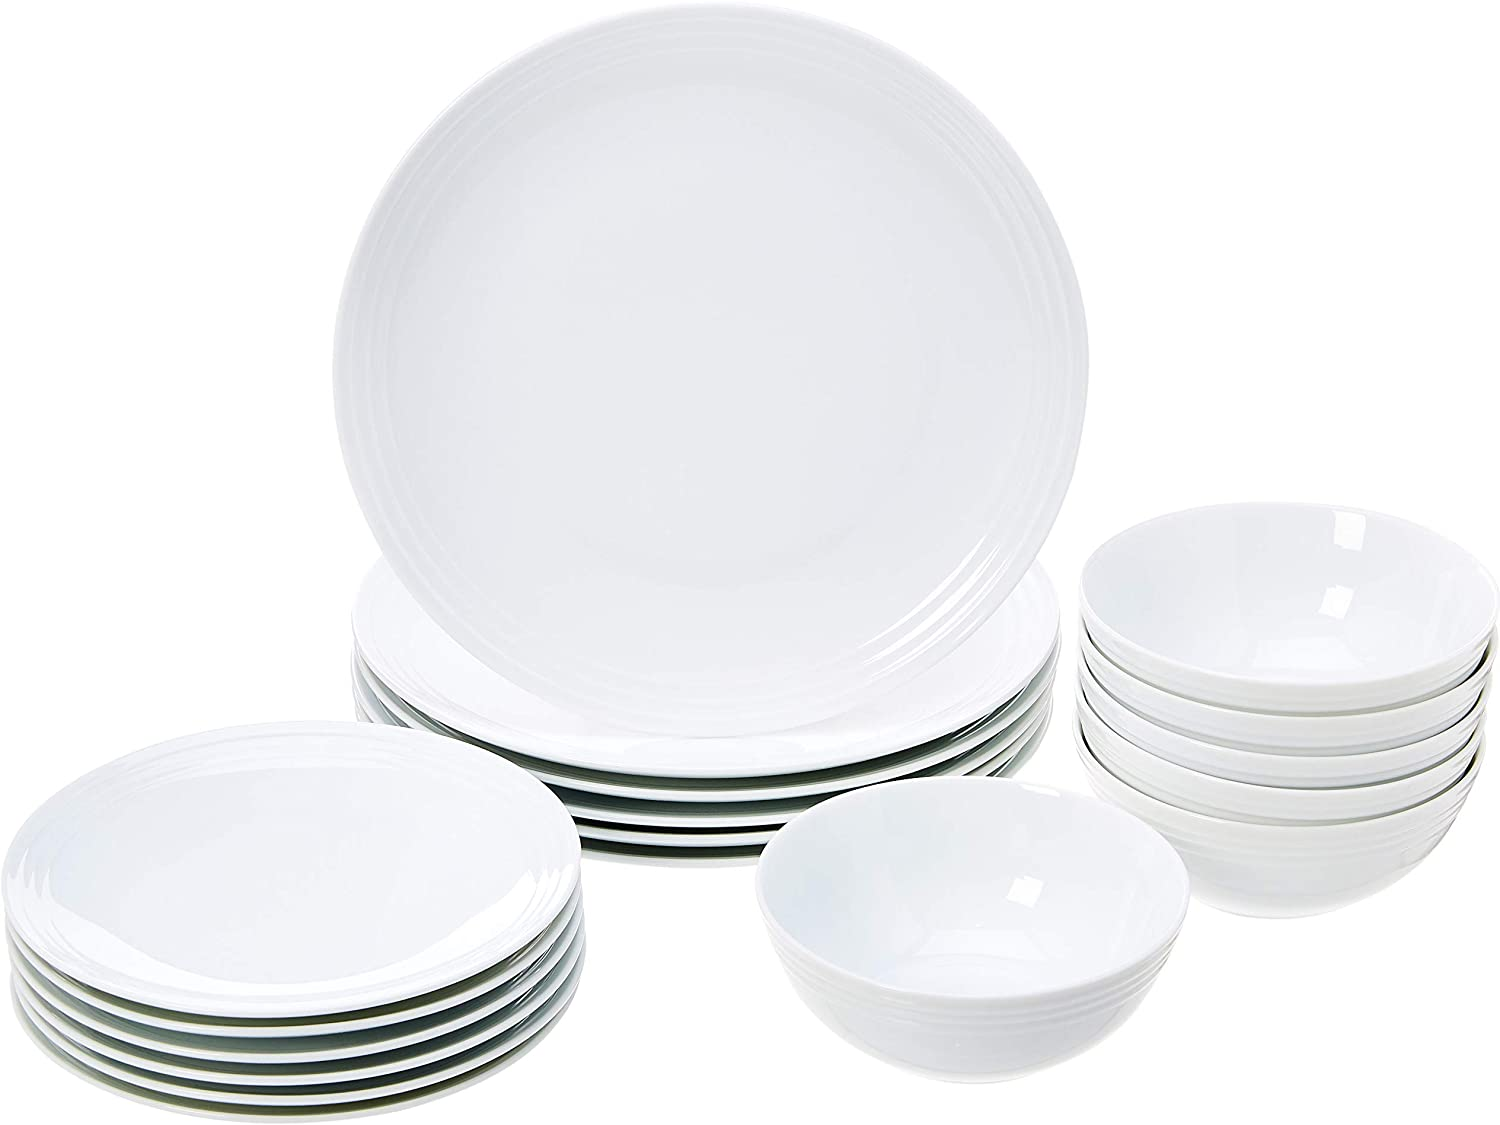 AmazonBasics 18-Piece Kitchen Dinnerware Set, Plates, Dishes, Bowls, Service for 6, White Embossed Porcelain